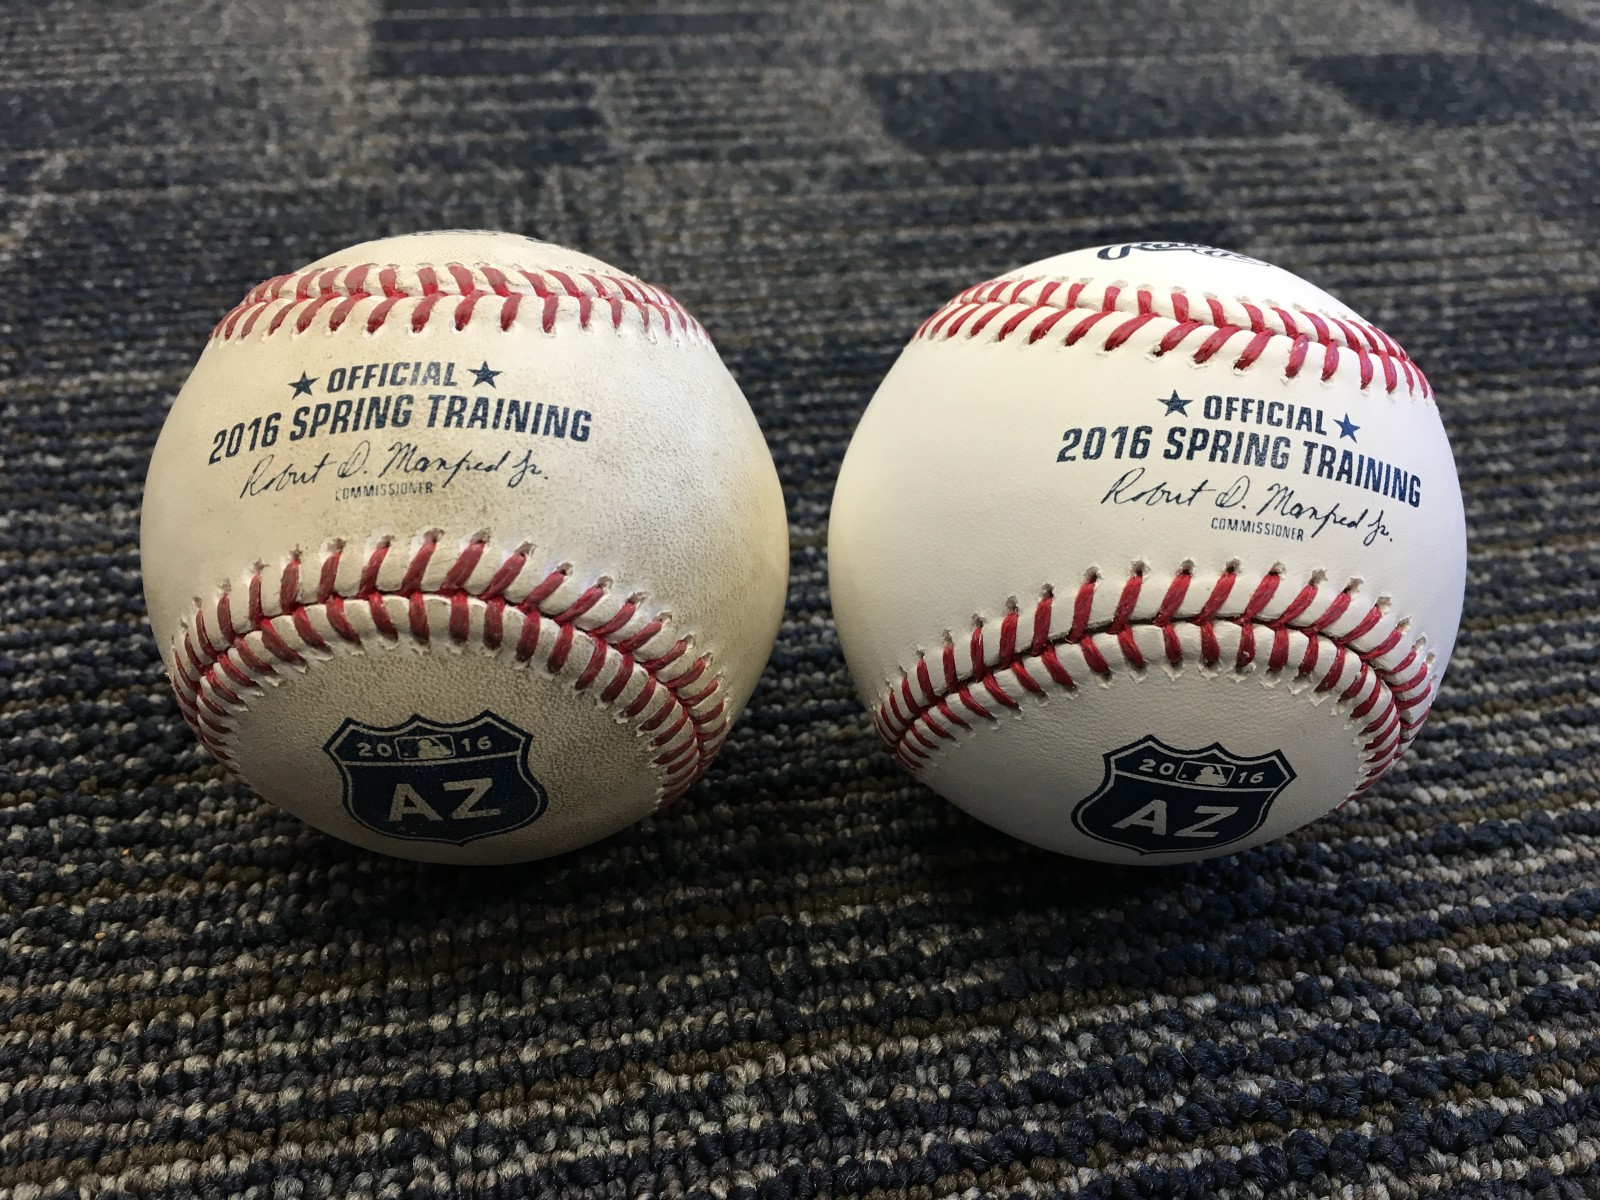 Mariners spring training update day 3 from the corner of edgar baseballs magic mud is used on every ball during spring training if you happen to catch a foul ball or home run during workouts odds are they were rubbed sciox Gallery